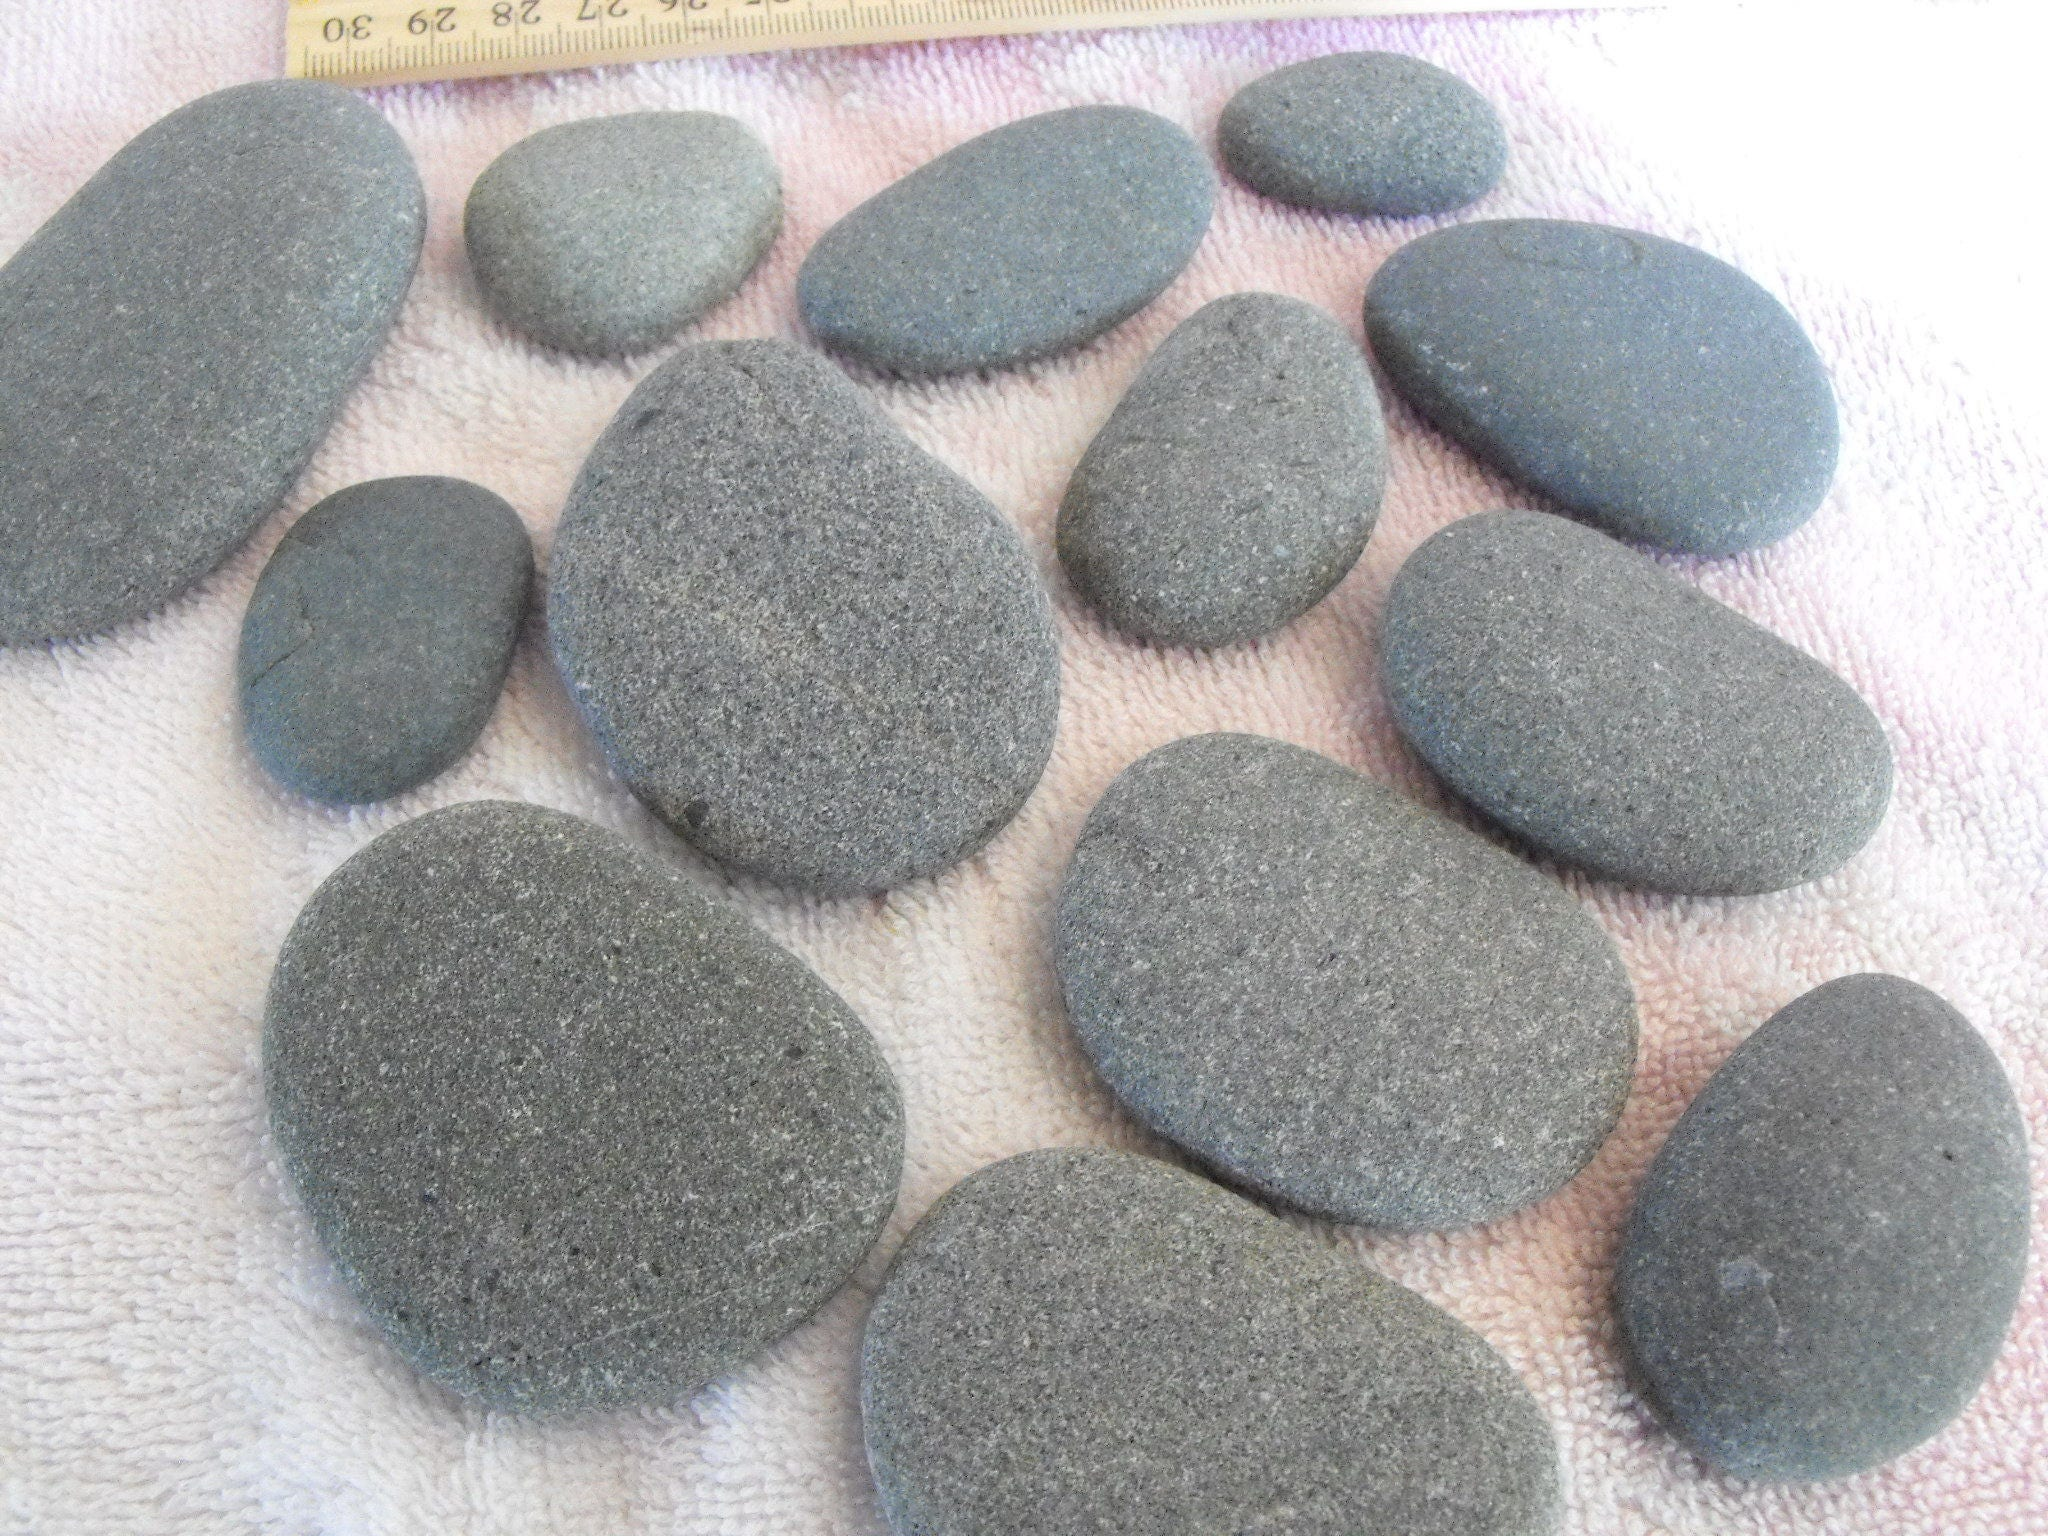 Oregon beach stones flat gray river rocks for carins or for Where to buy flat rocks for crafts